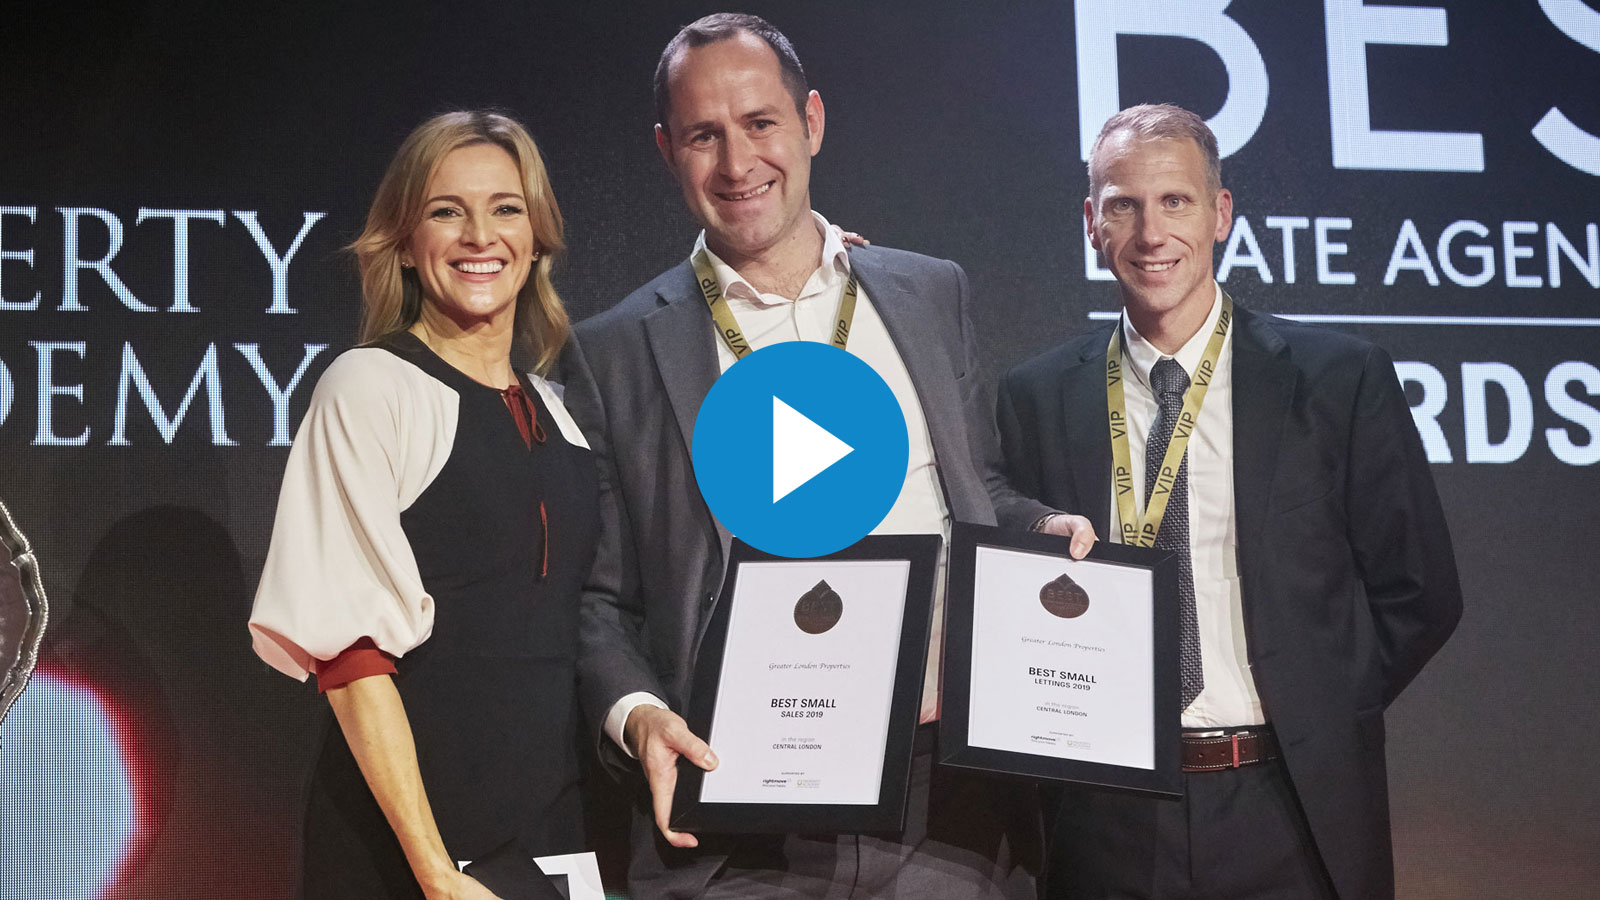 Best estate agent london 2019 award video cover